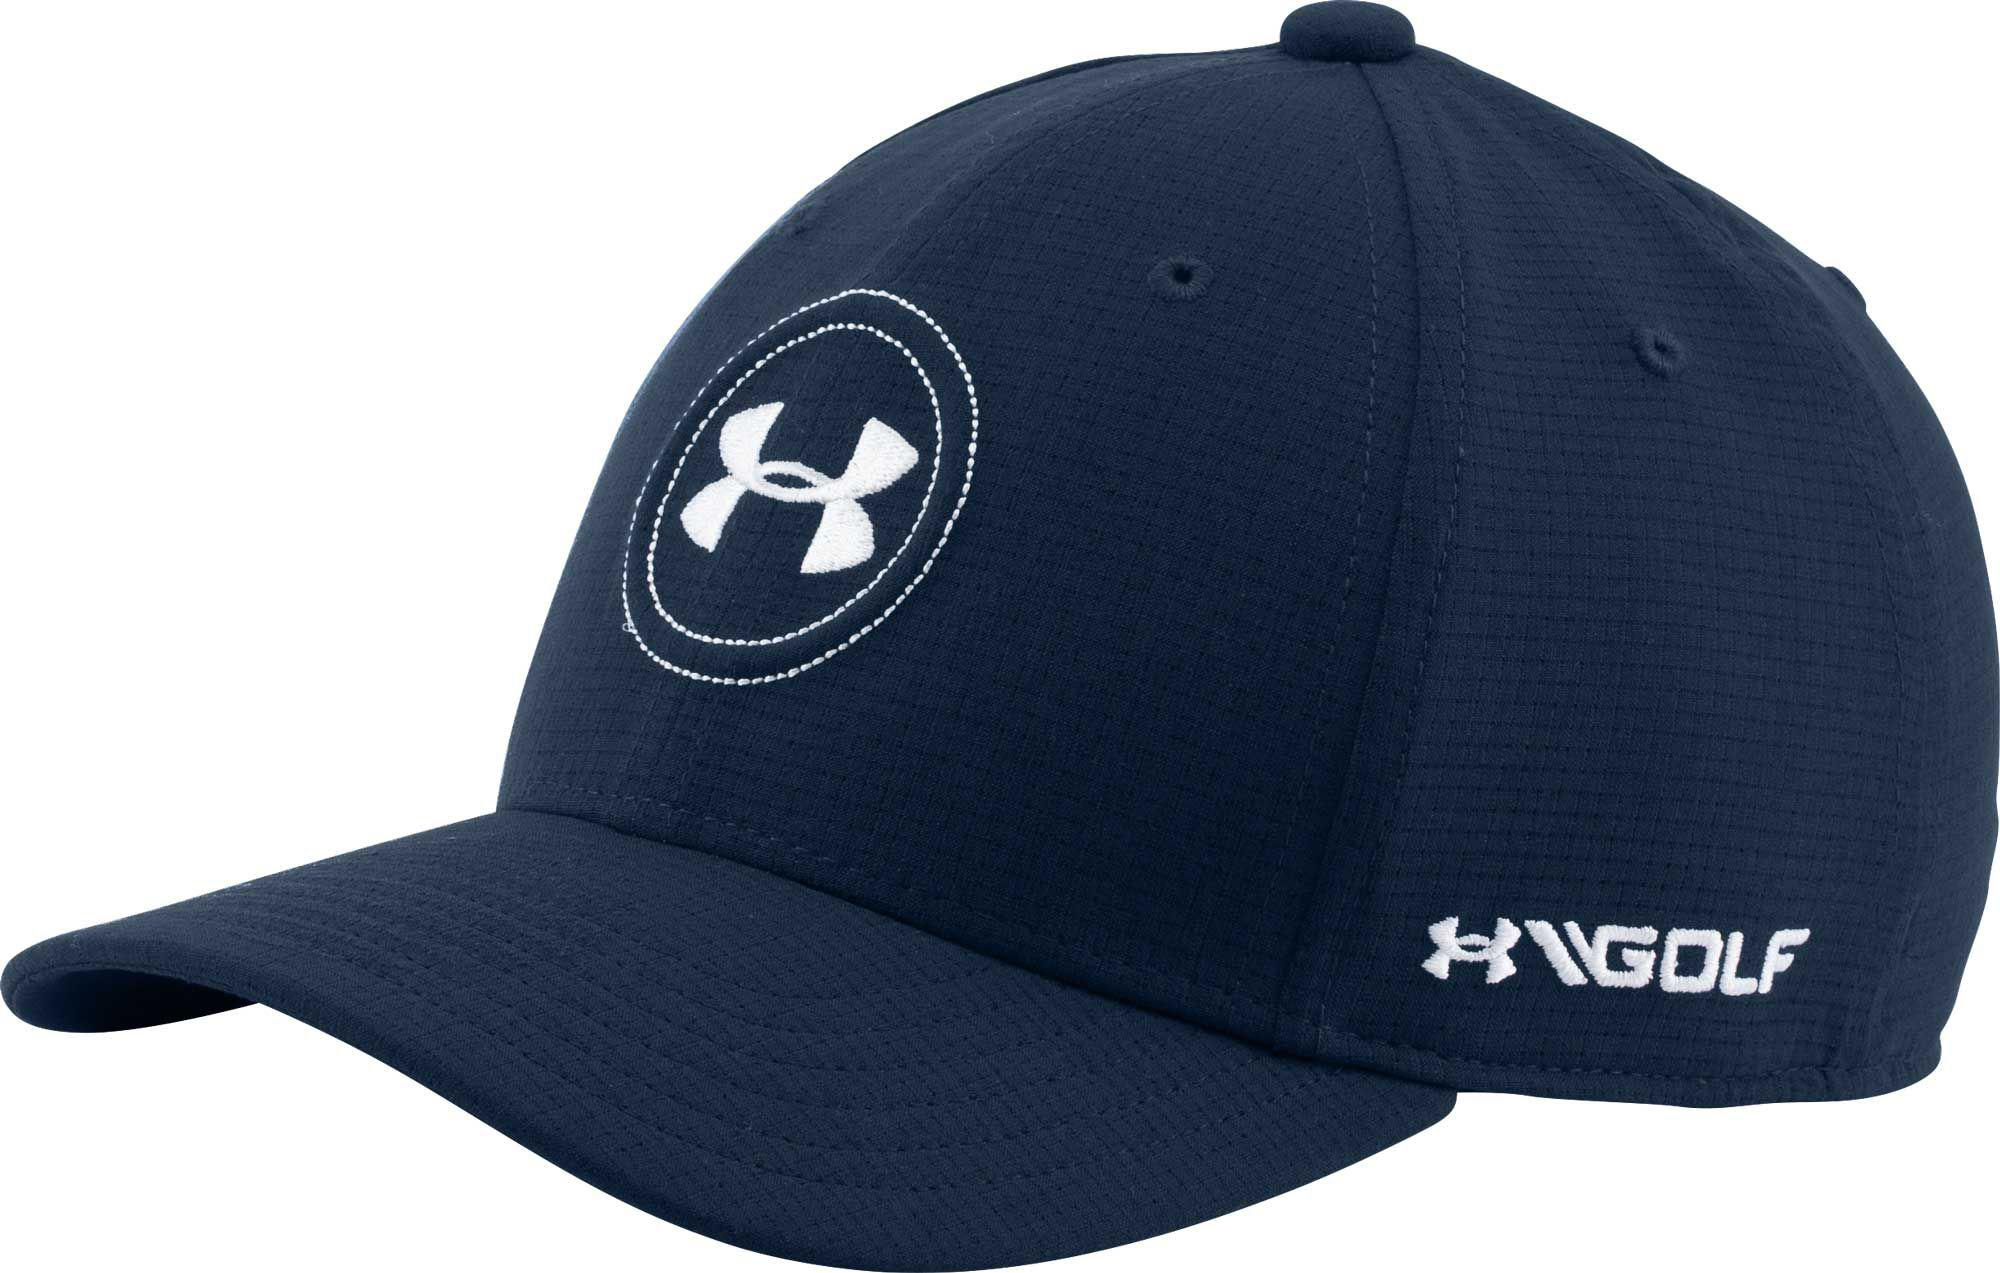 576d68f160f Under Armour. Men s Blue Oys  Official Tour Golf Hat.  25 From Dick s  Sporting Goods